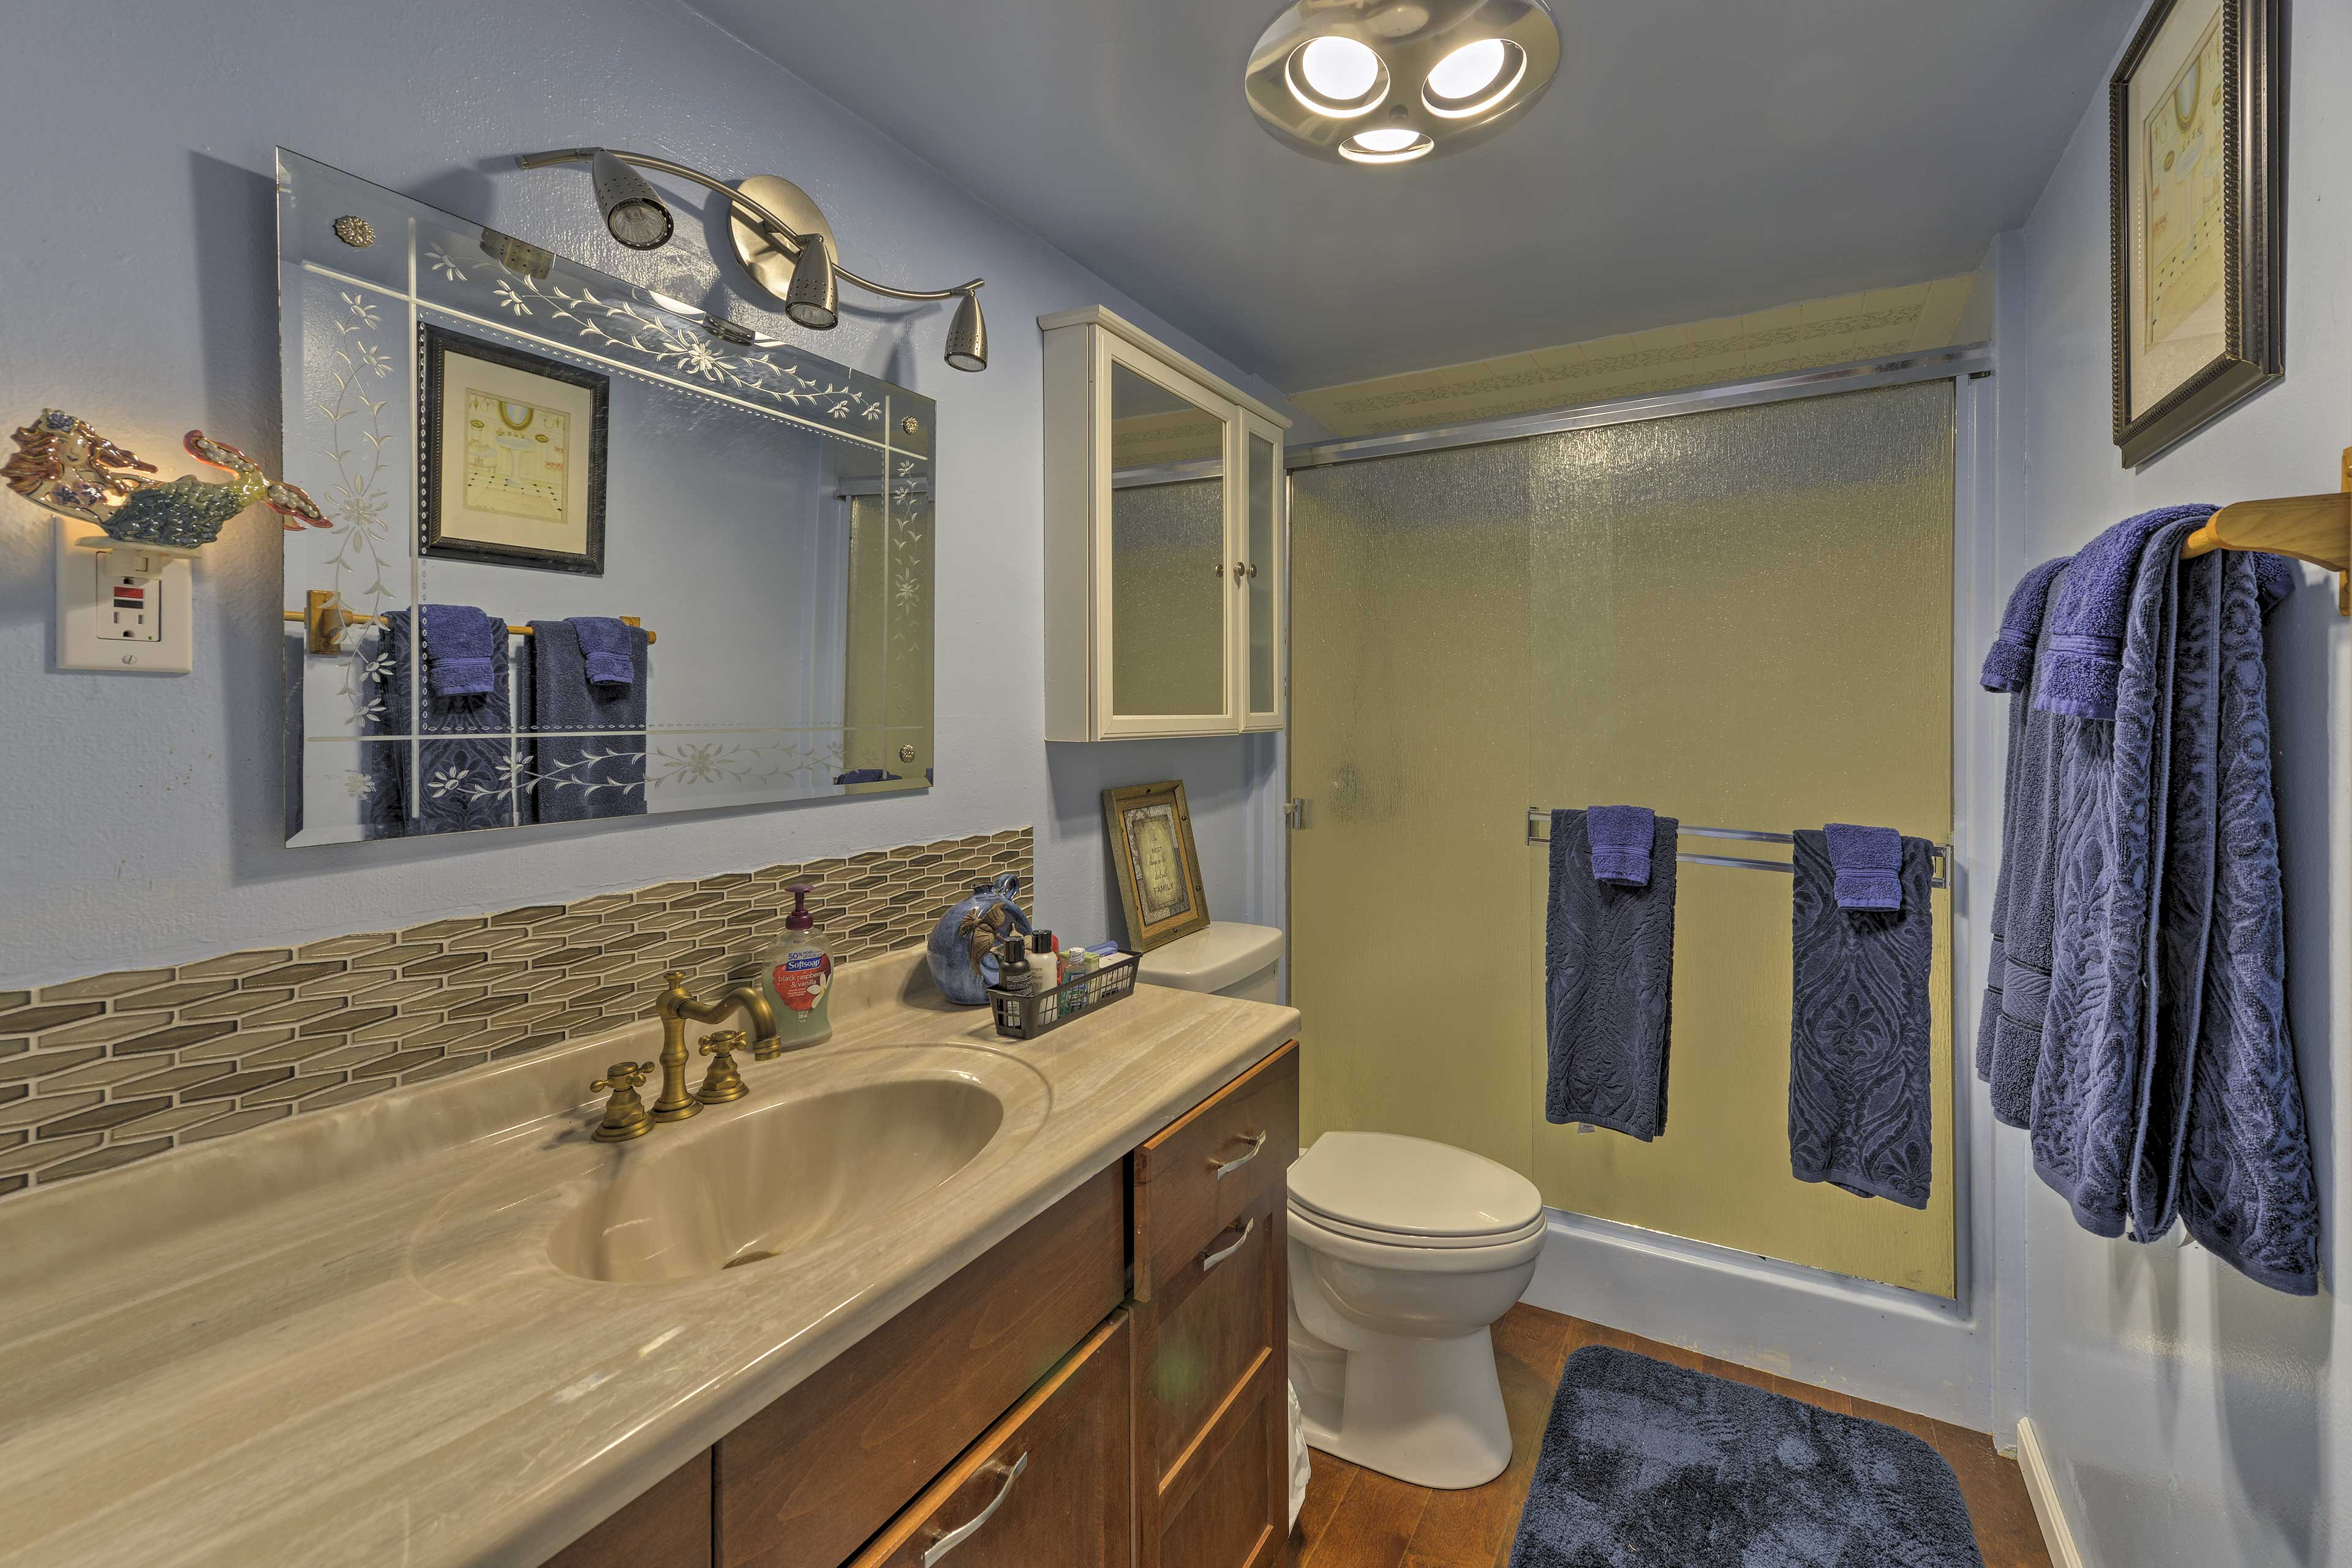 The home offers 1 bathroom for guests to use.